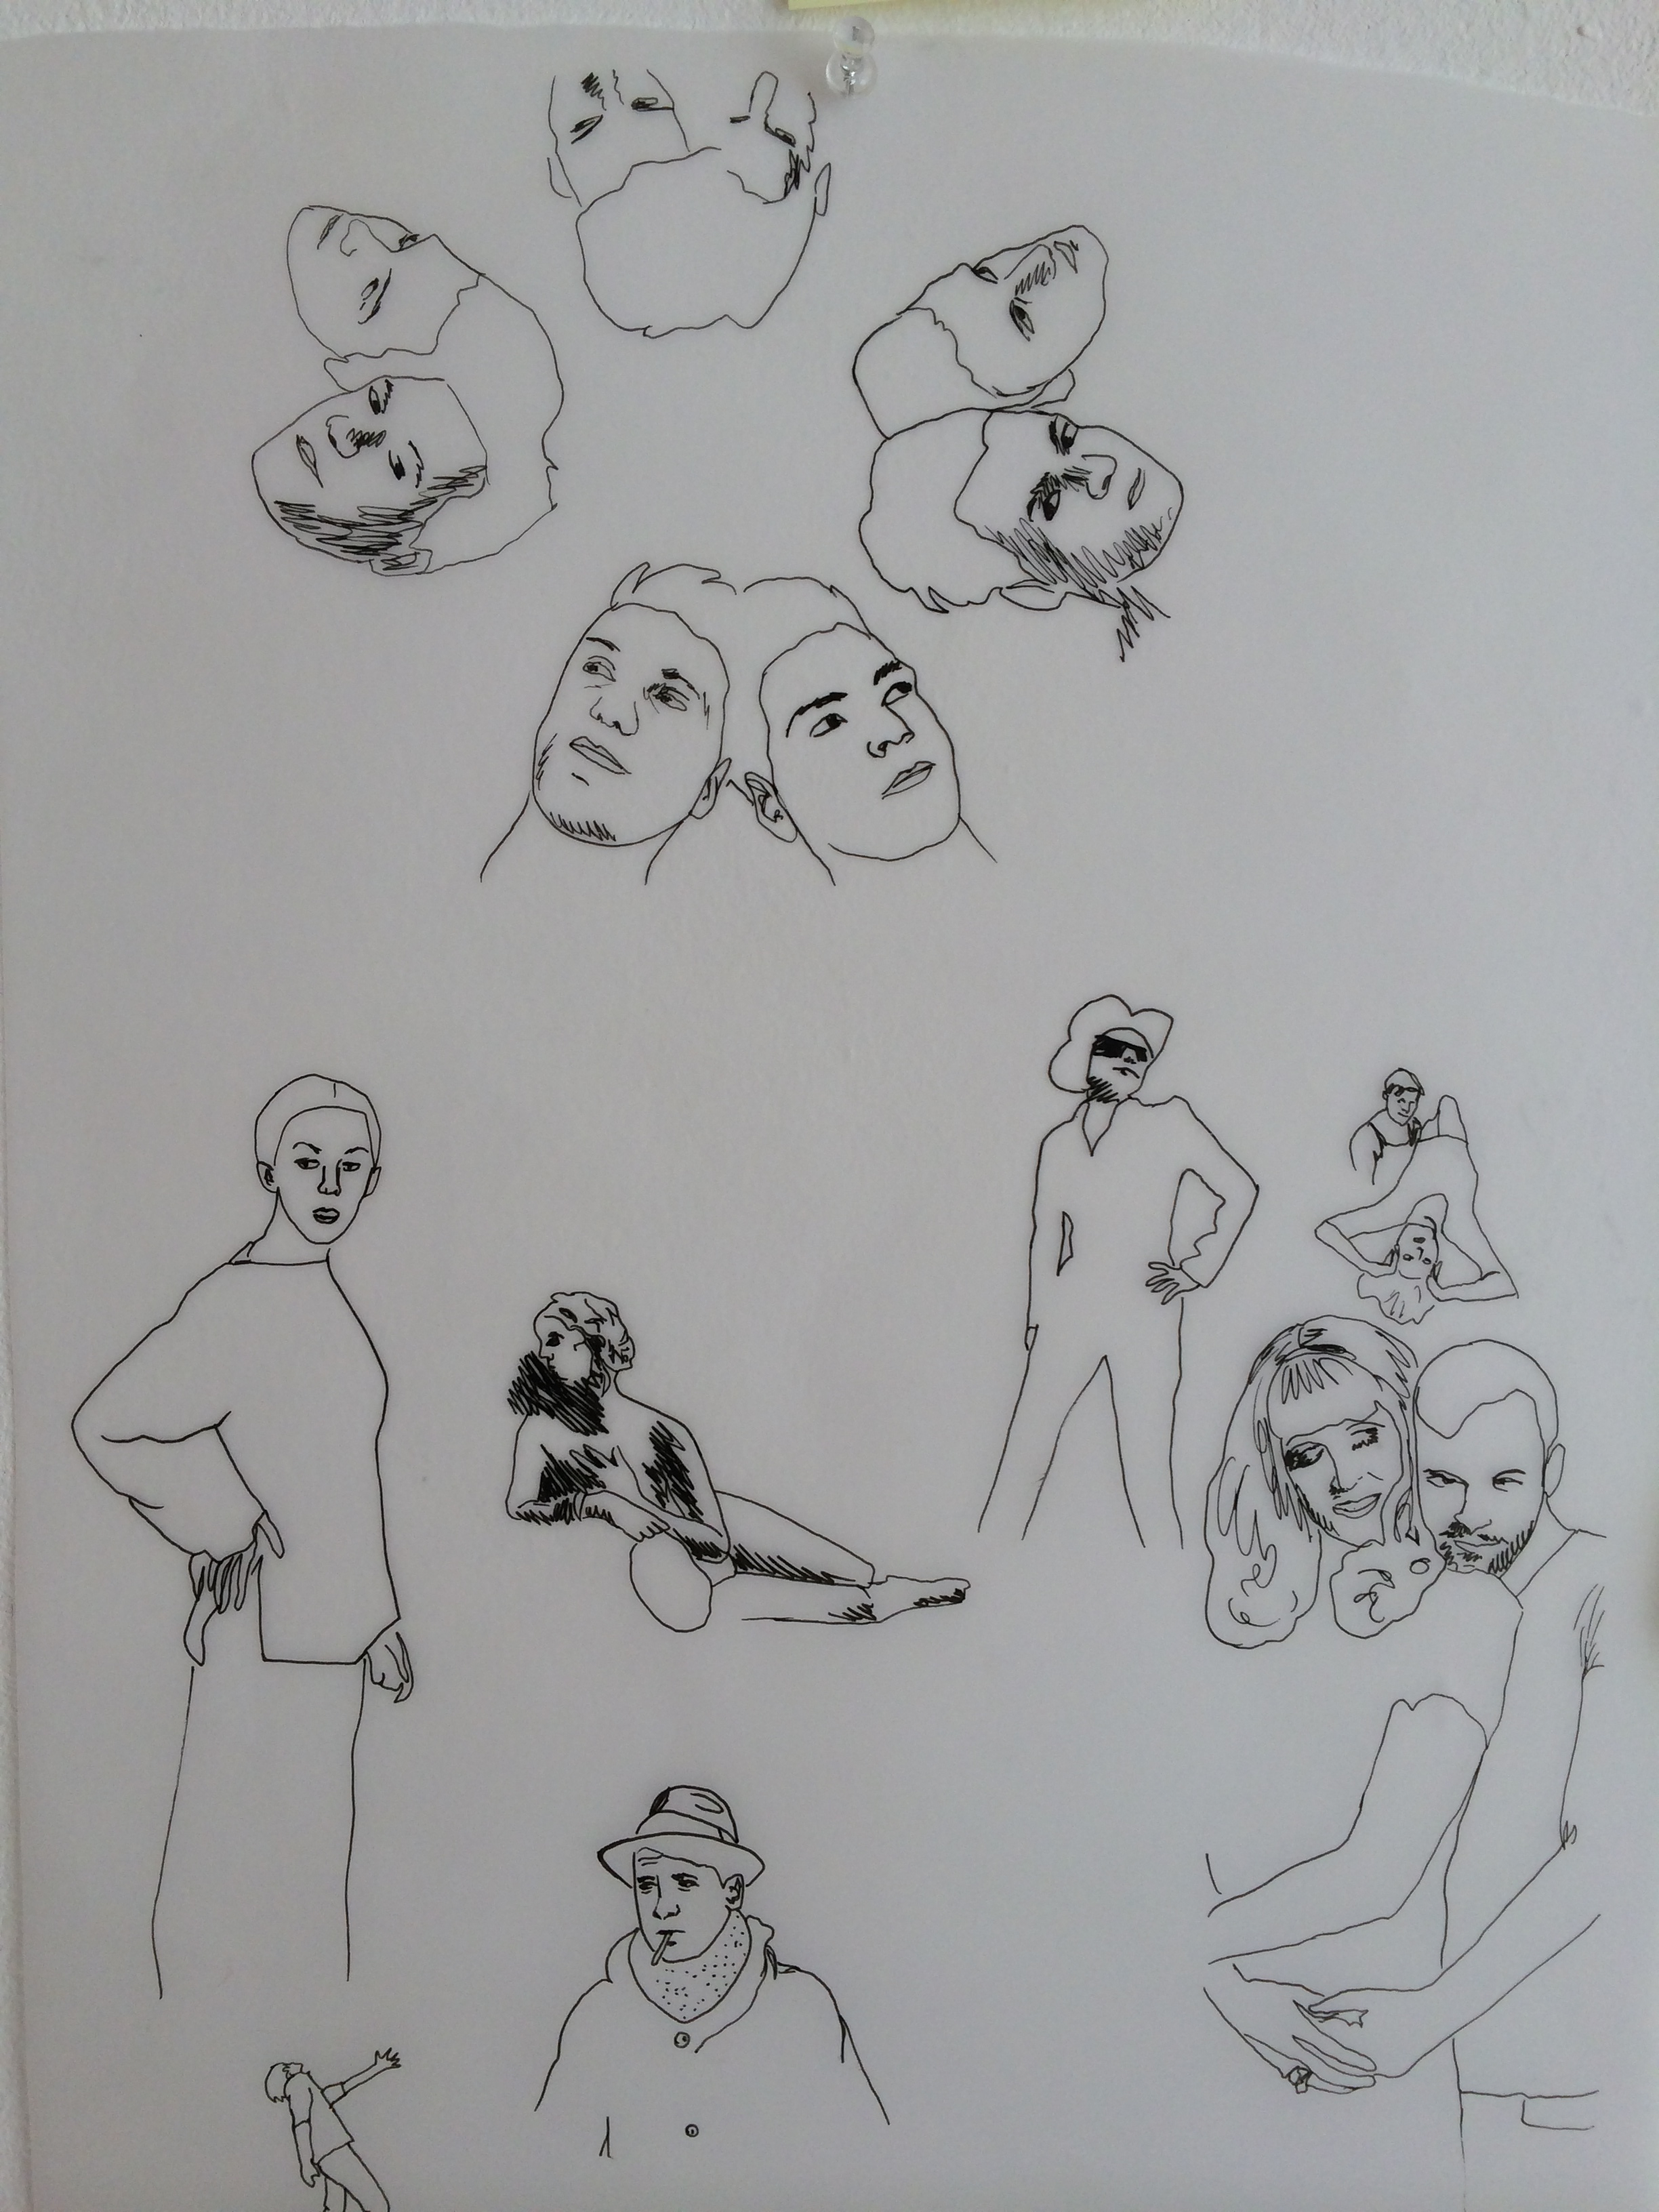 8/9/14 Tracing poses from magazines